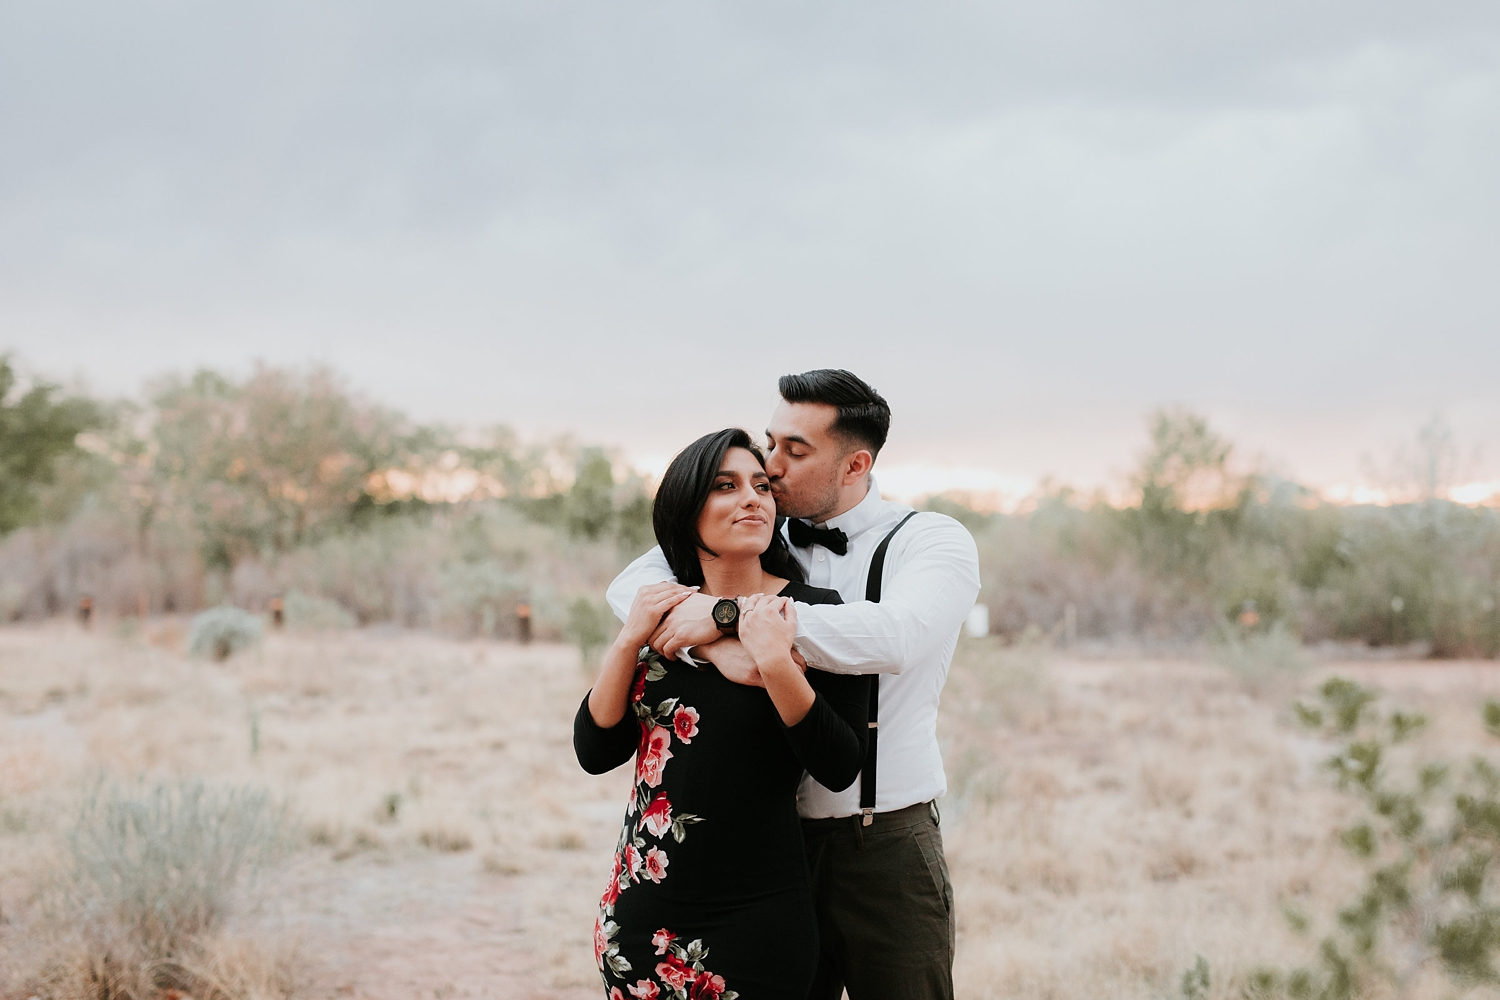 Alicia+lucia+photography+-+albuquerque+wedding+photographer+-+santa+fe+wedding+photography+-+new+mexico+wedding+photographer+-+new+mexico+engagement+-+new+mexico+desert+engagement+-+spring+bosque+engagement_0013.jpg